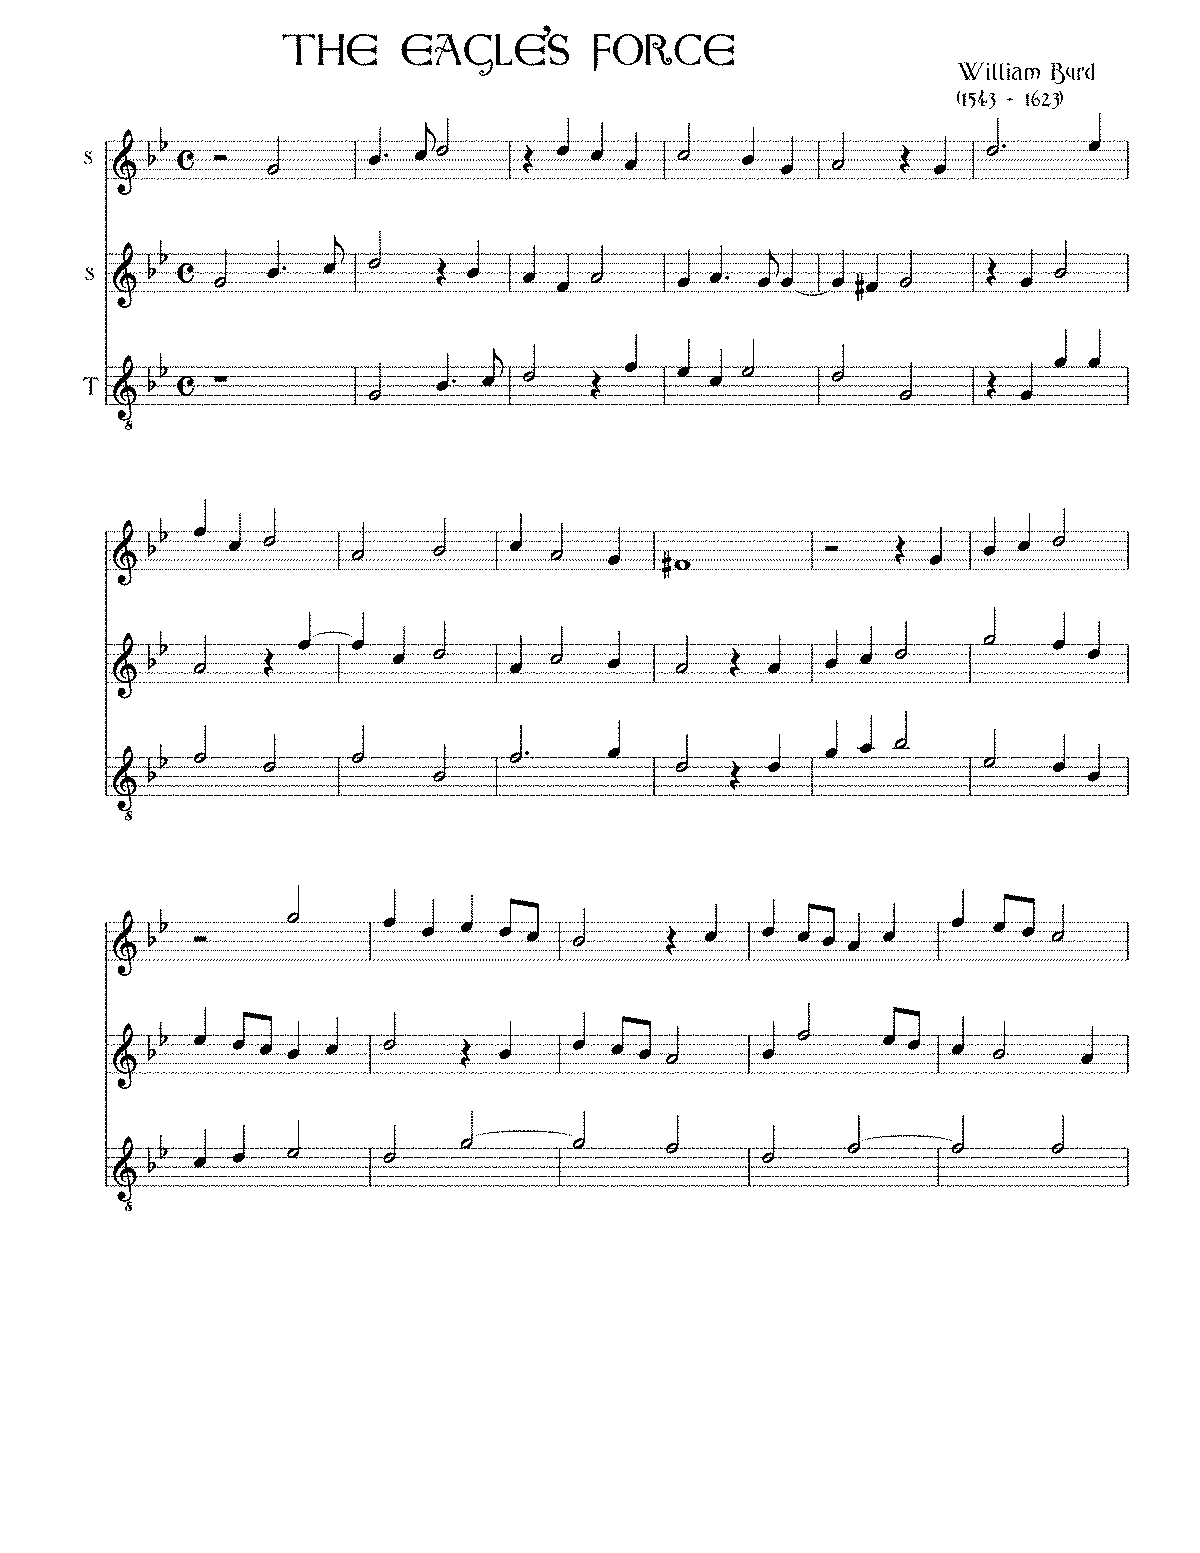 Byrd - The Eagle's Force.pdf